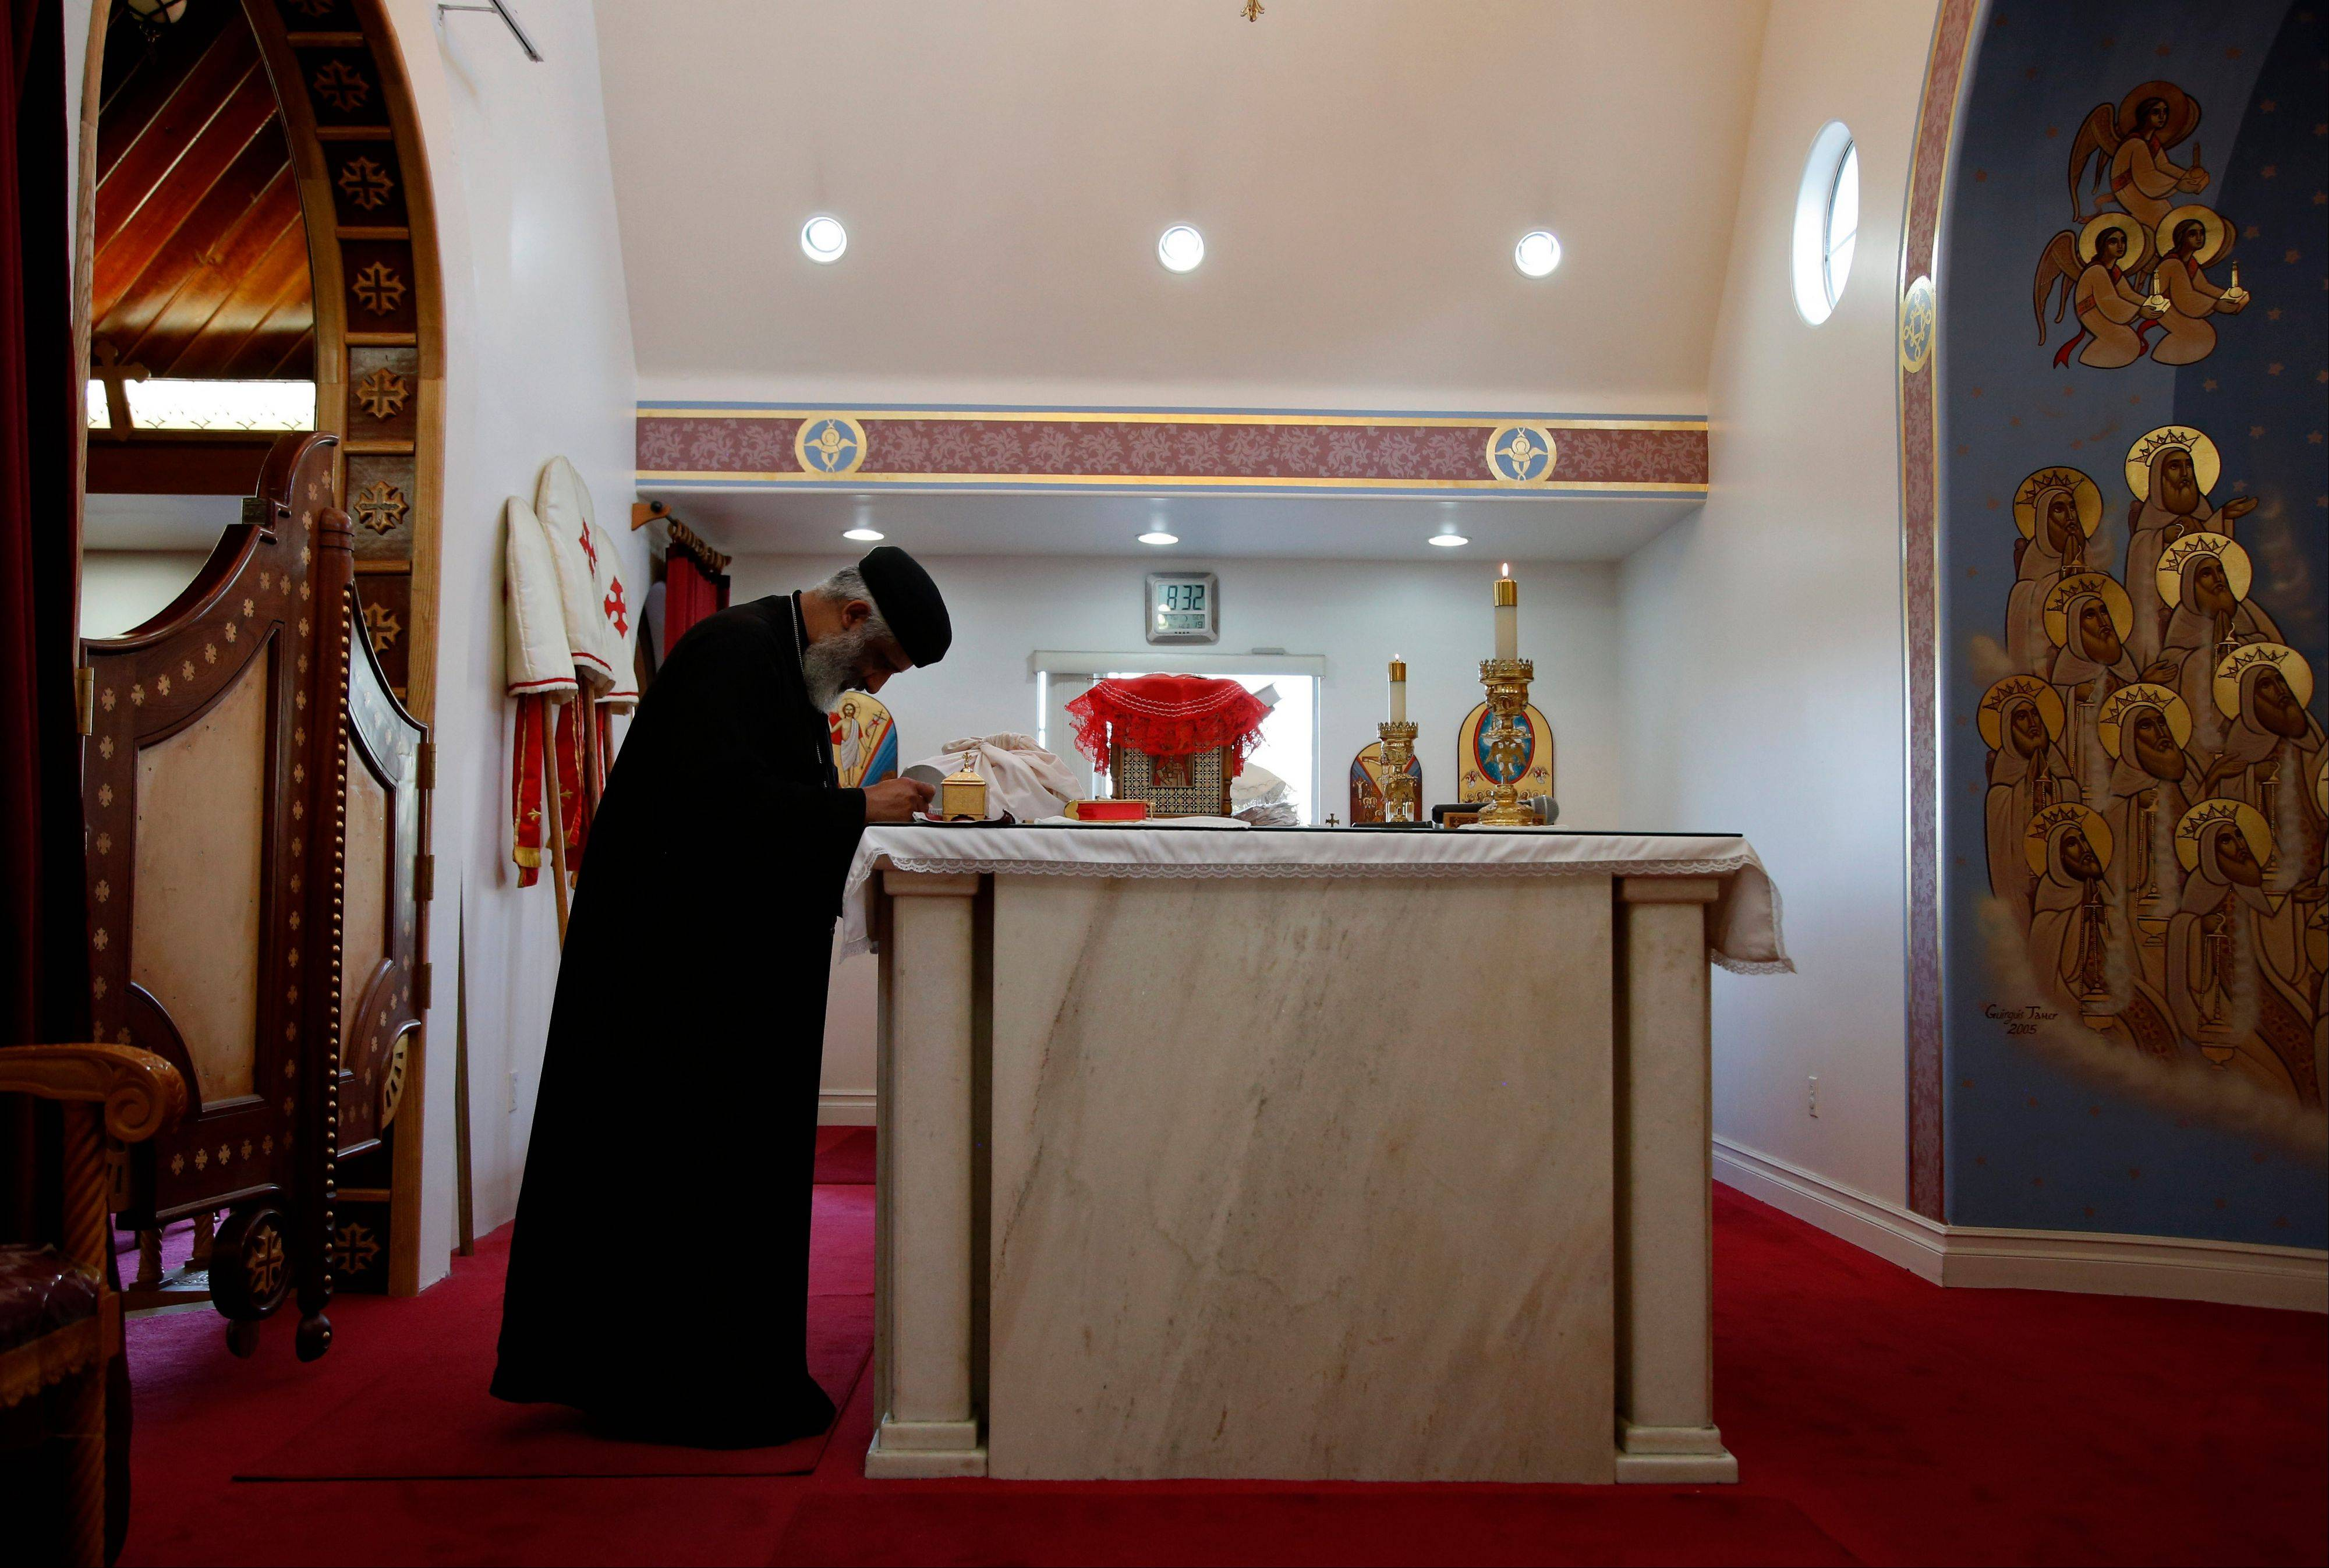 The Rev. Joseph Boules, left, prays during a mass at St. Mary and St. Verena Orthodox Coptic Church in Anaheim, Calif.